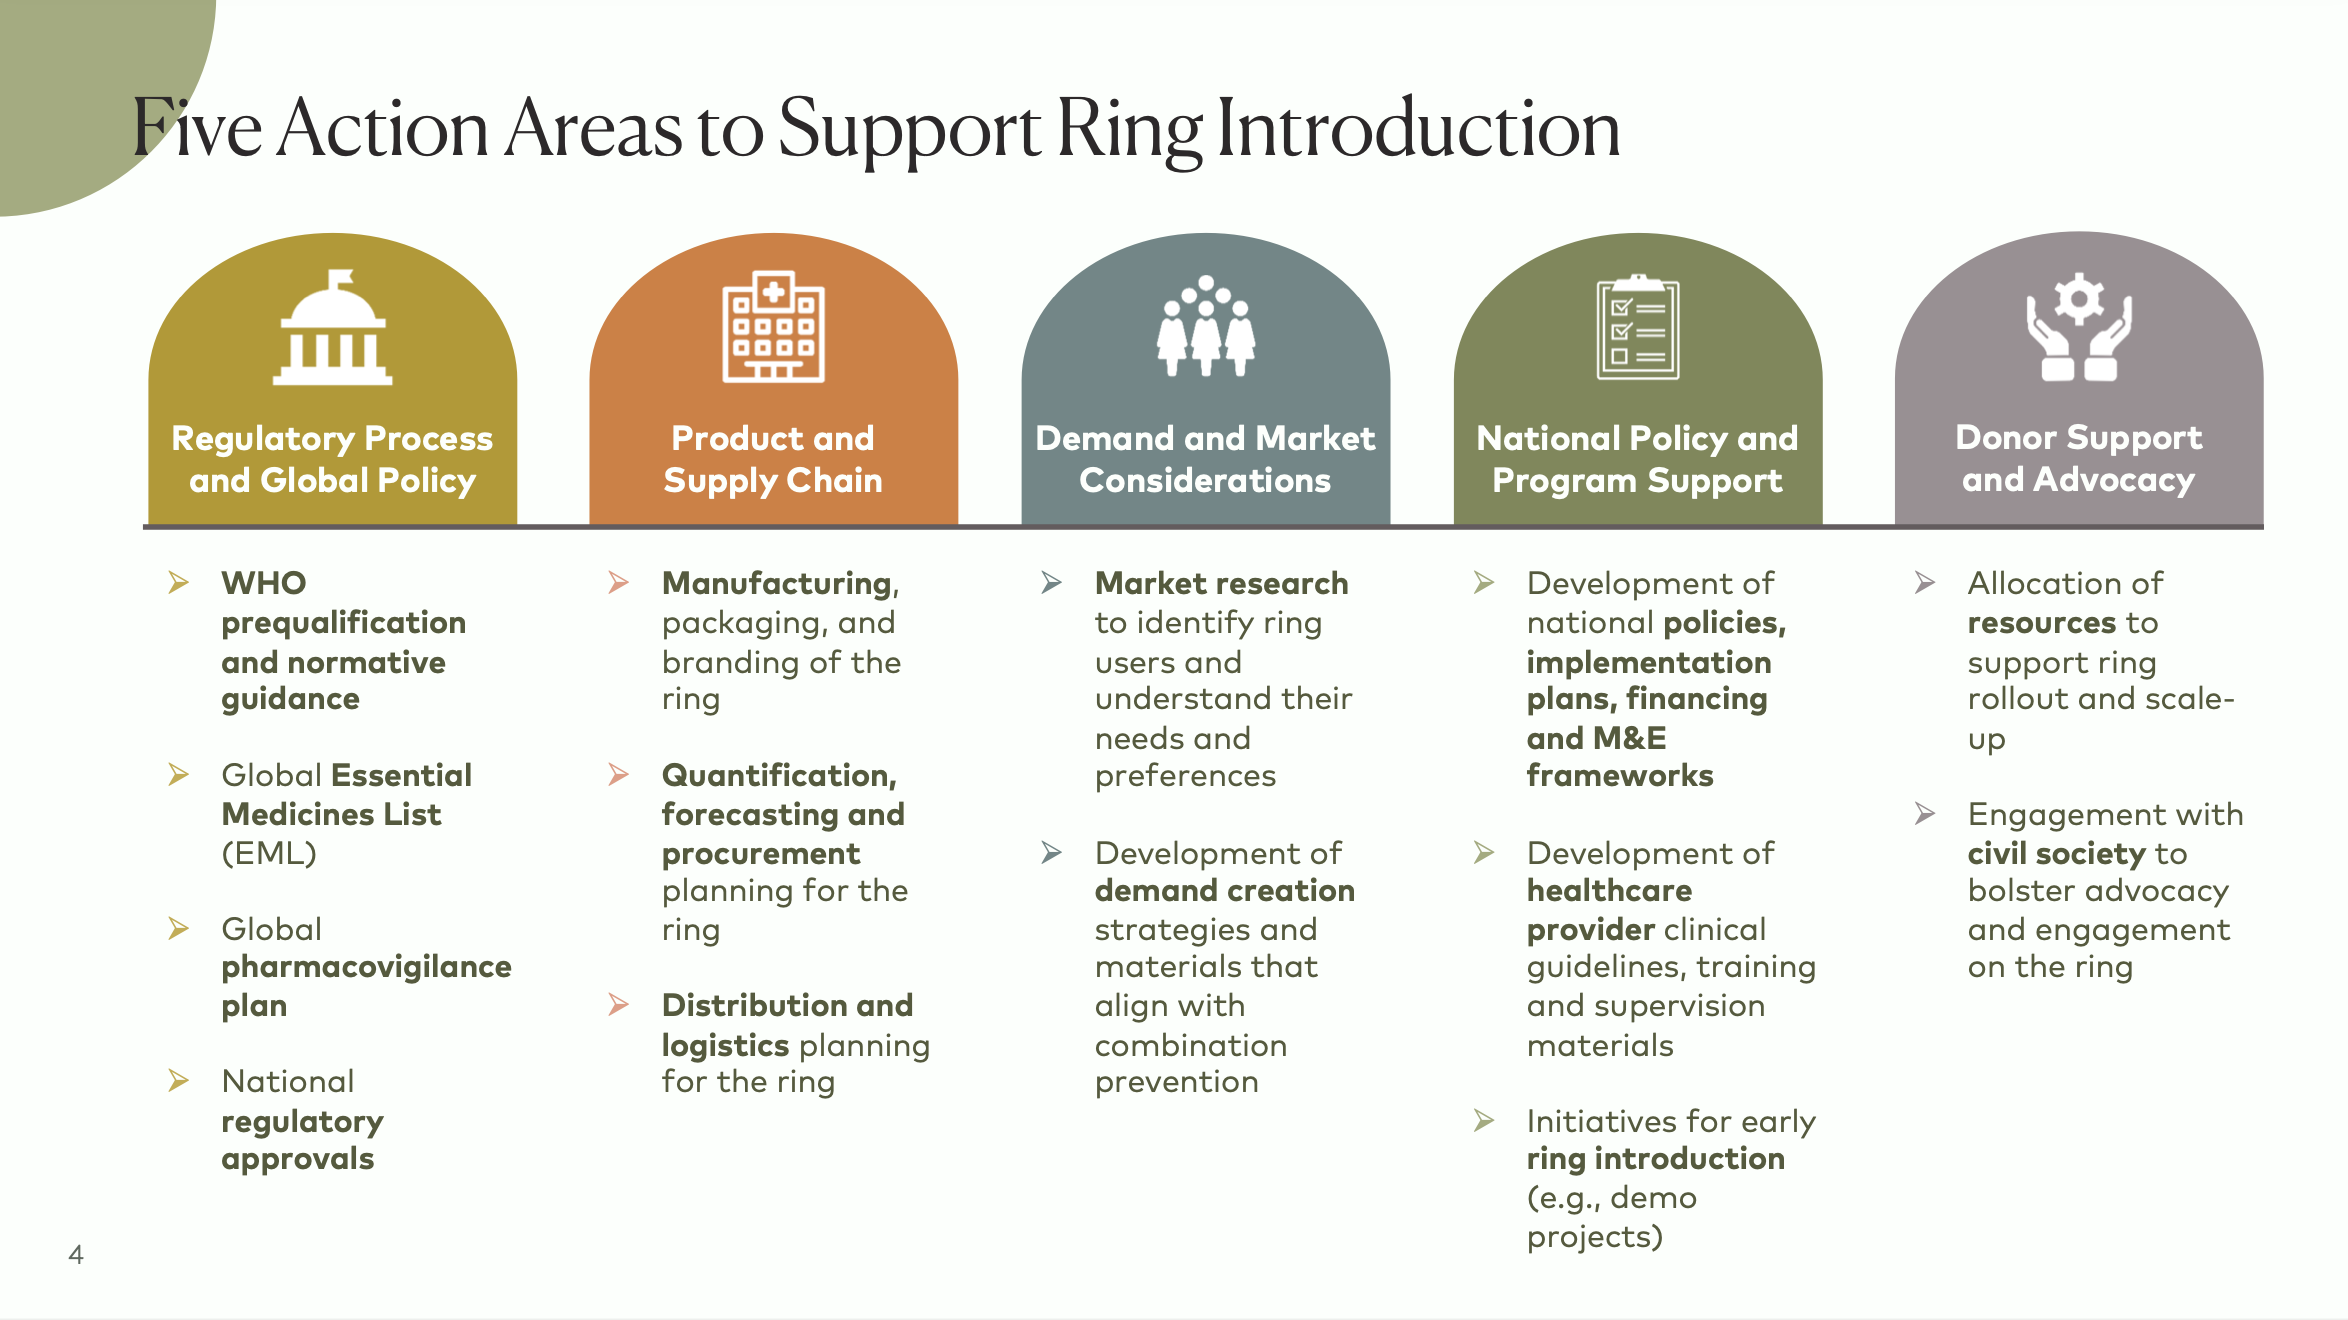 Five action areas to support ring introduction